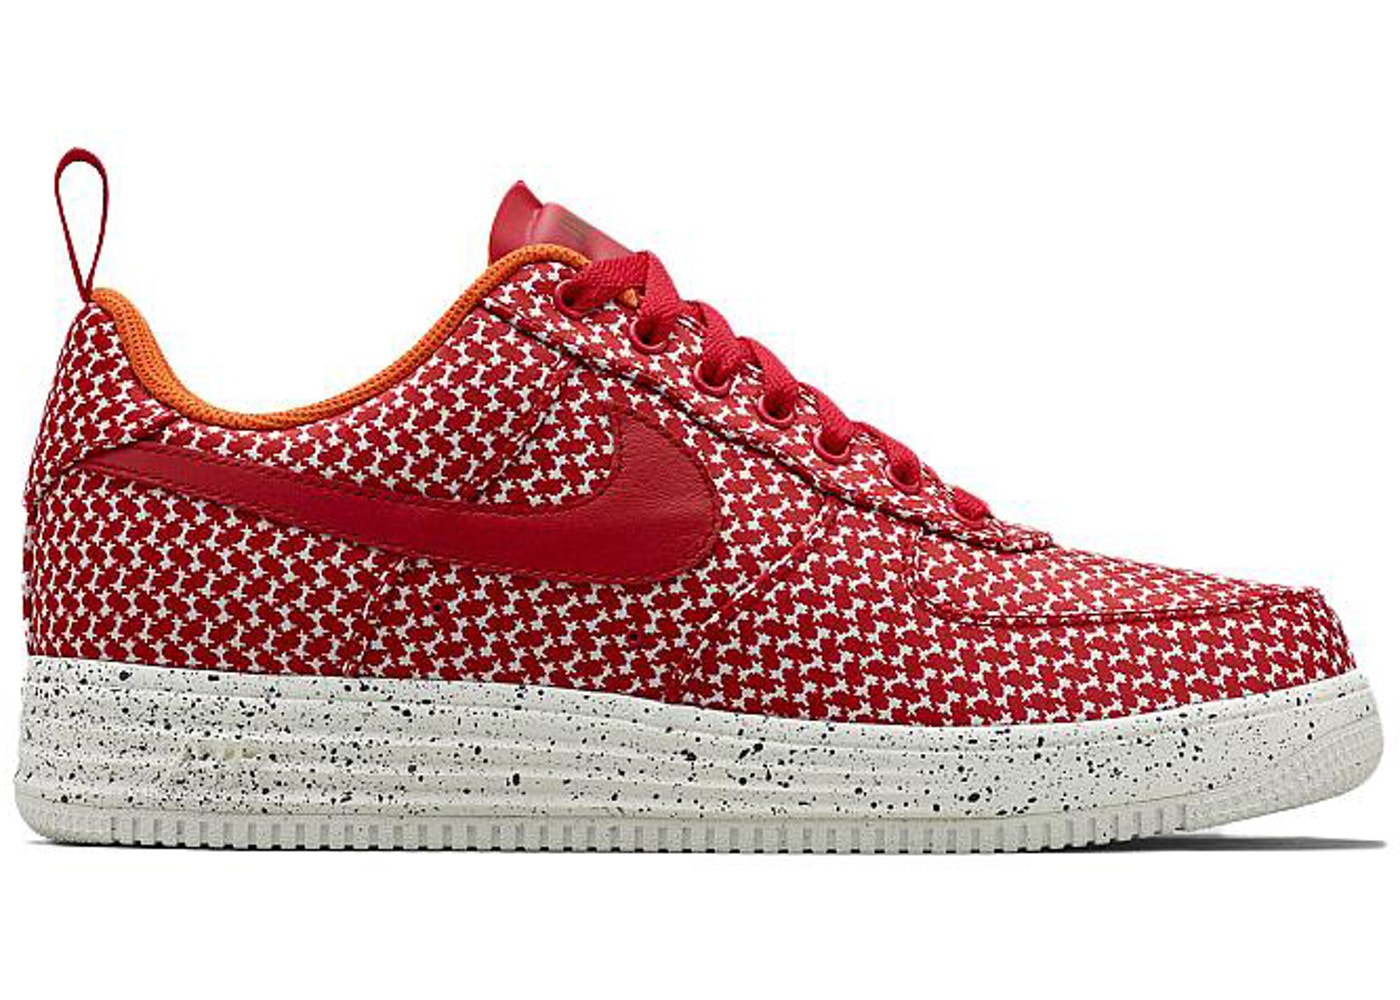 timeless design a6fc7 f11c0 Lunar Force 1 Low Undefeated